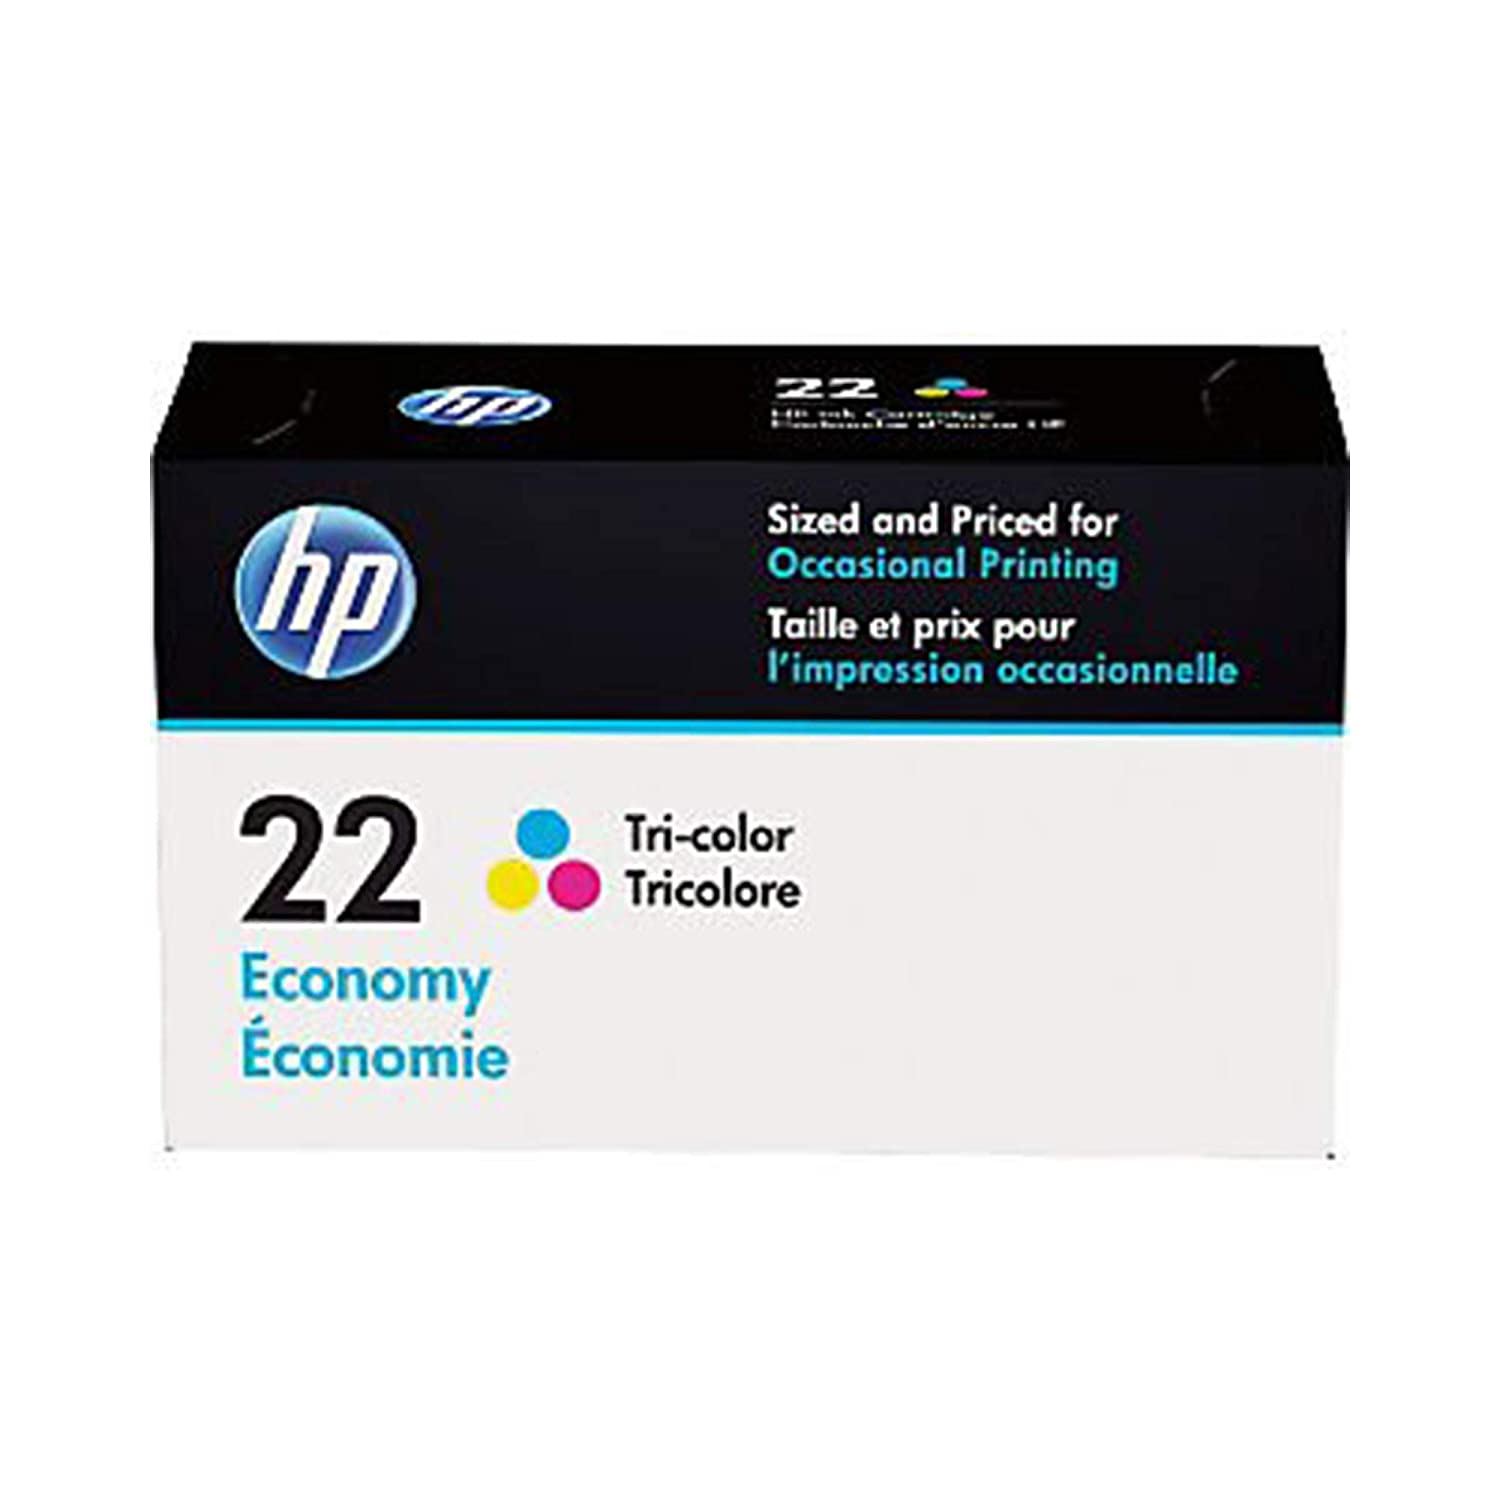 Amazon.com: HP 22 tri-color cartucho de tinta Original de ...